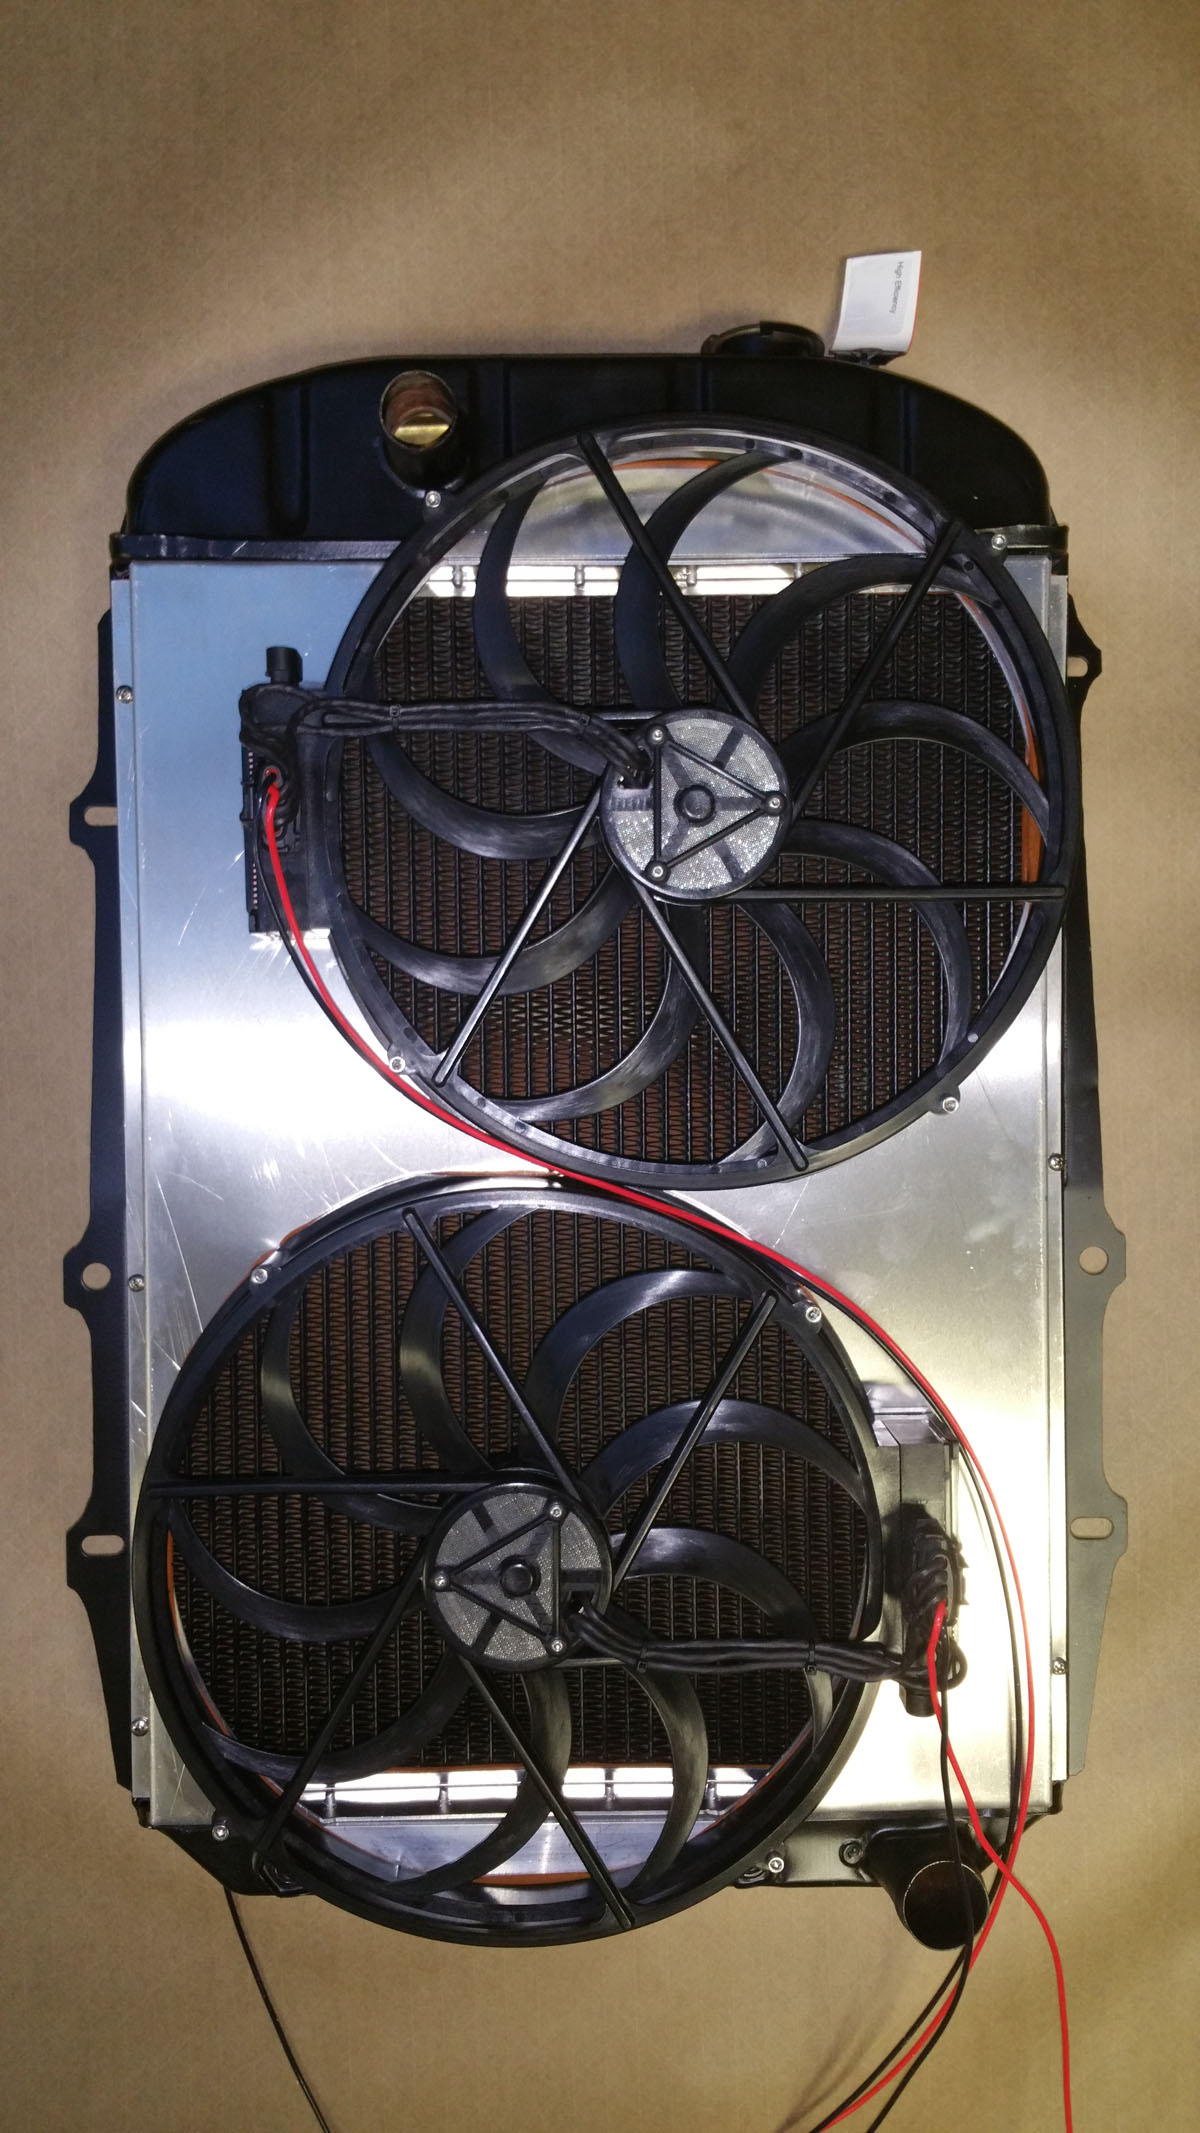 New rad and twin fans (1)